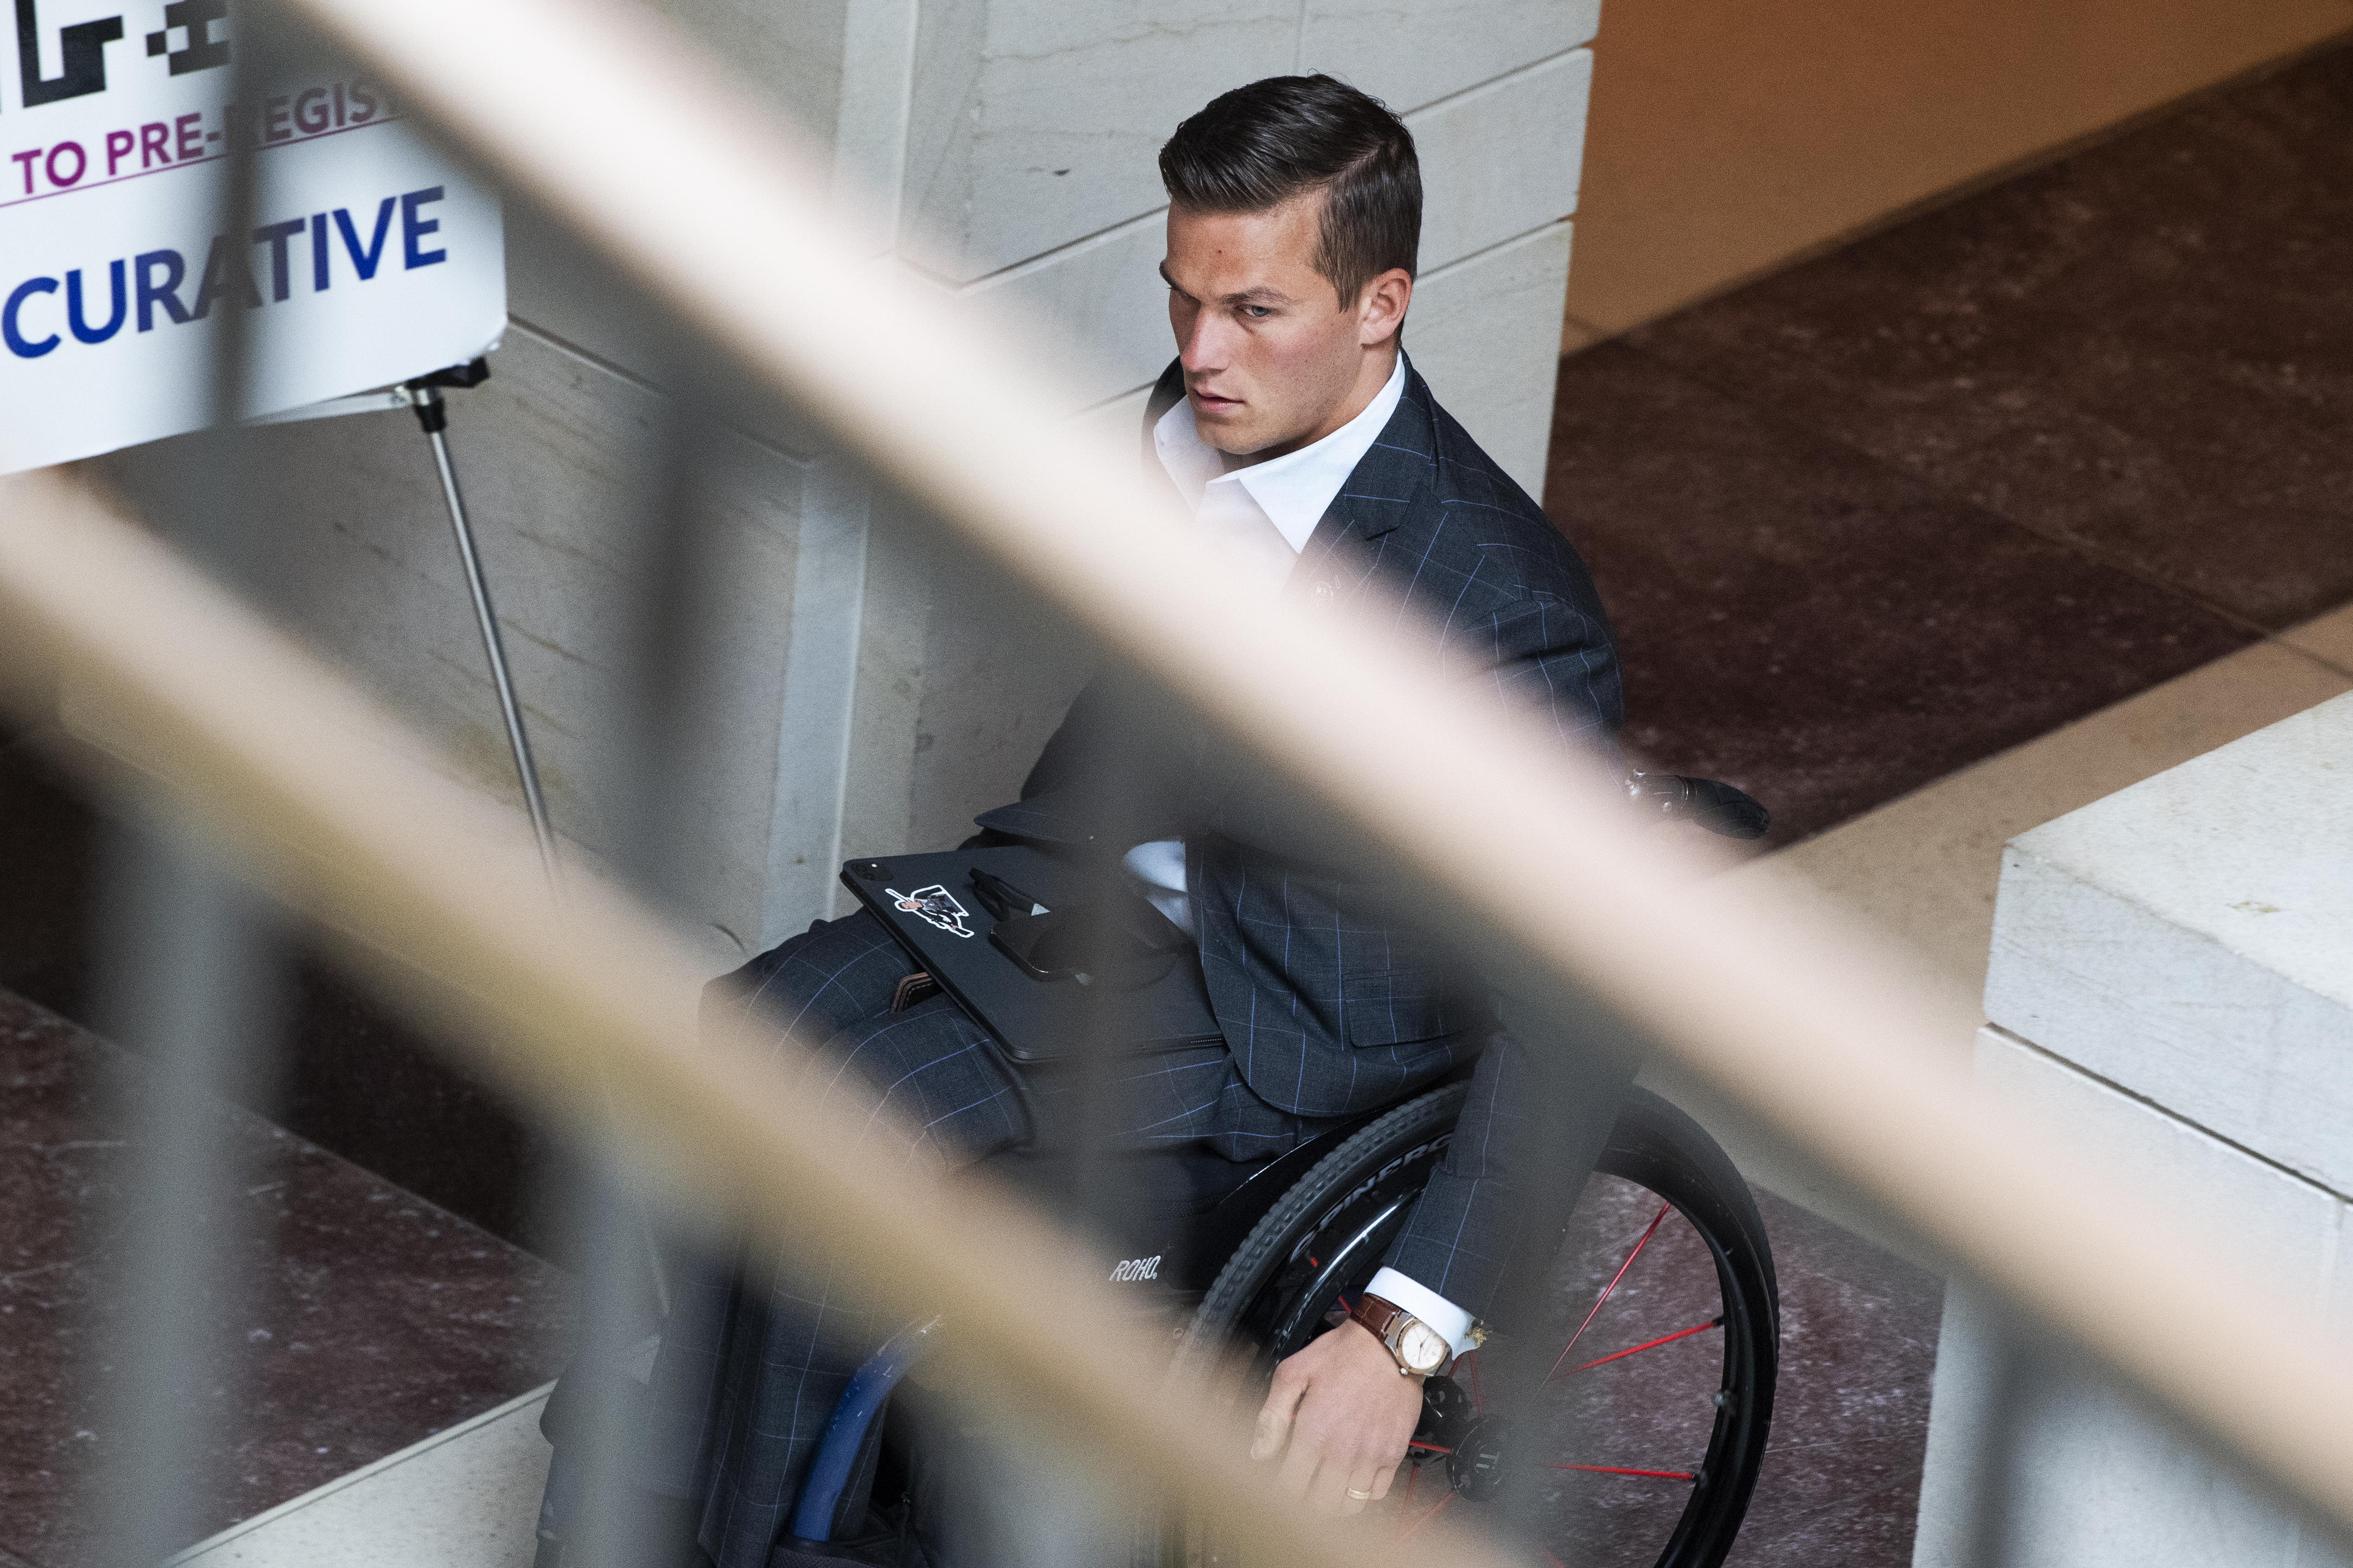 Madison Cawthorn, wearing a suit and moving his wheelchair down a hallway, viewed from above through the railing bars of a nearby staircase